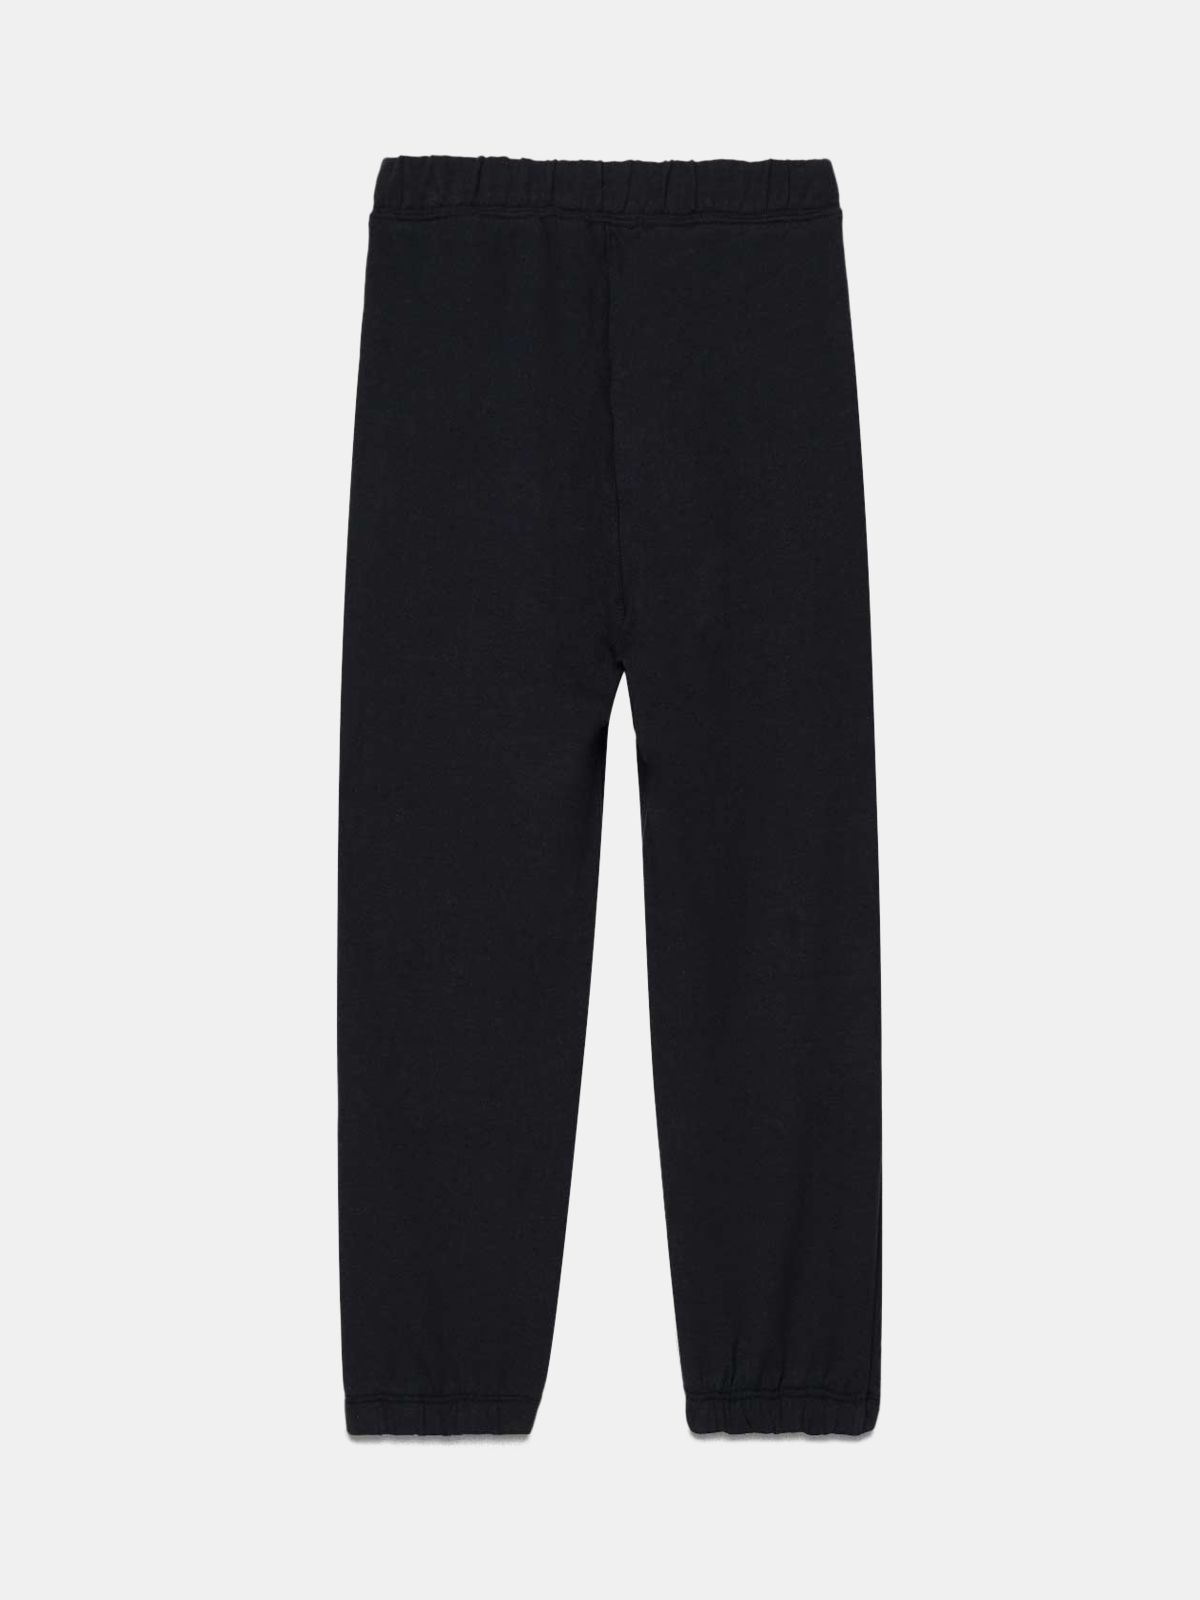 Golden Goose - Dark blue Golden joggers with contrasting white logo in